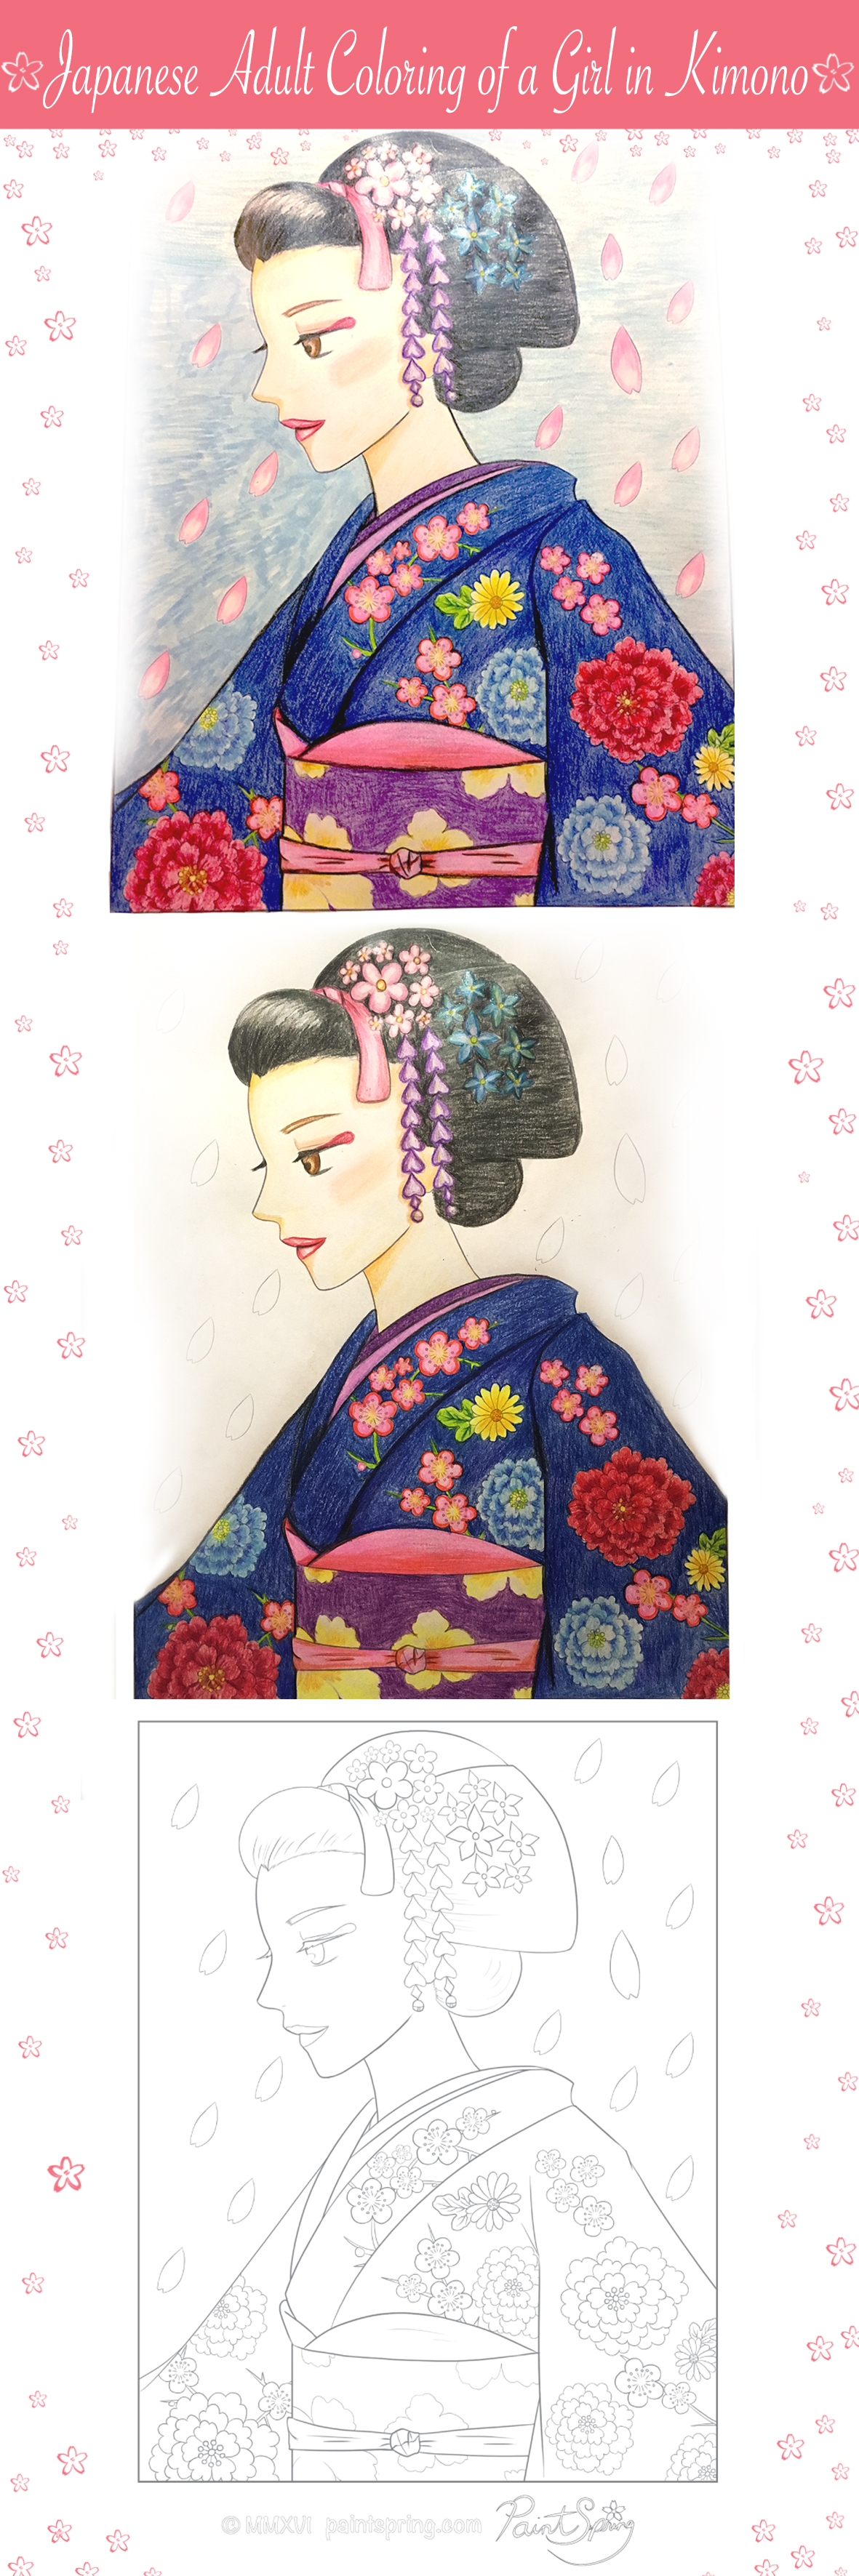 Japanese adult coloring of a girl in kimono i had so much fun